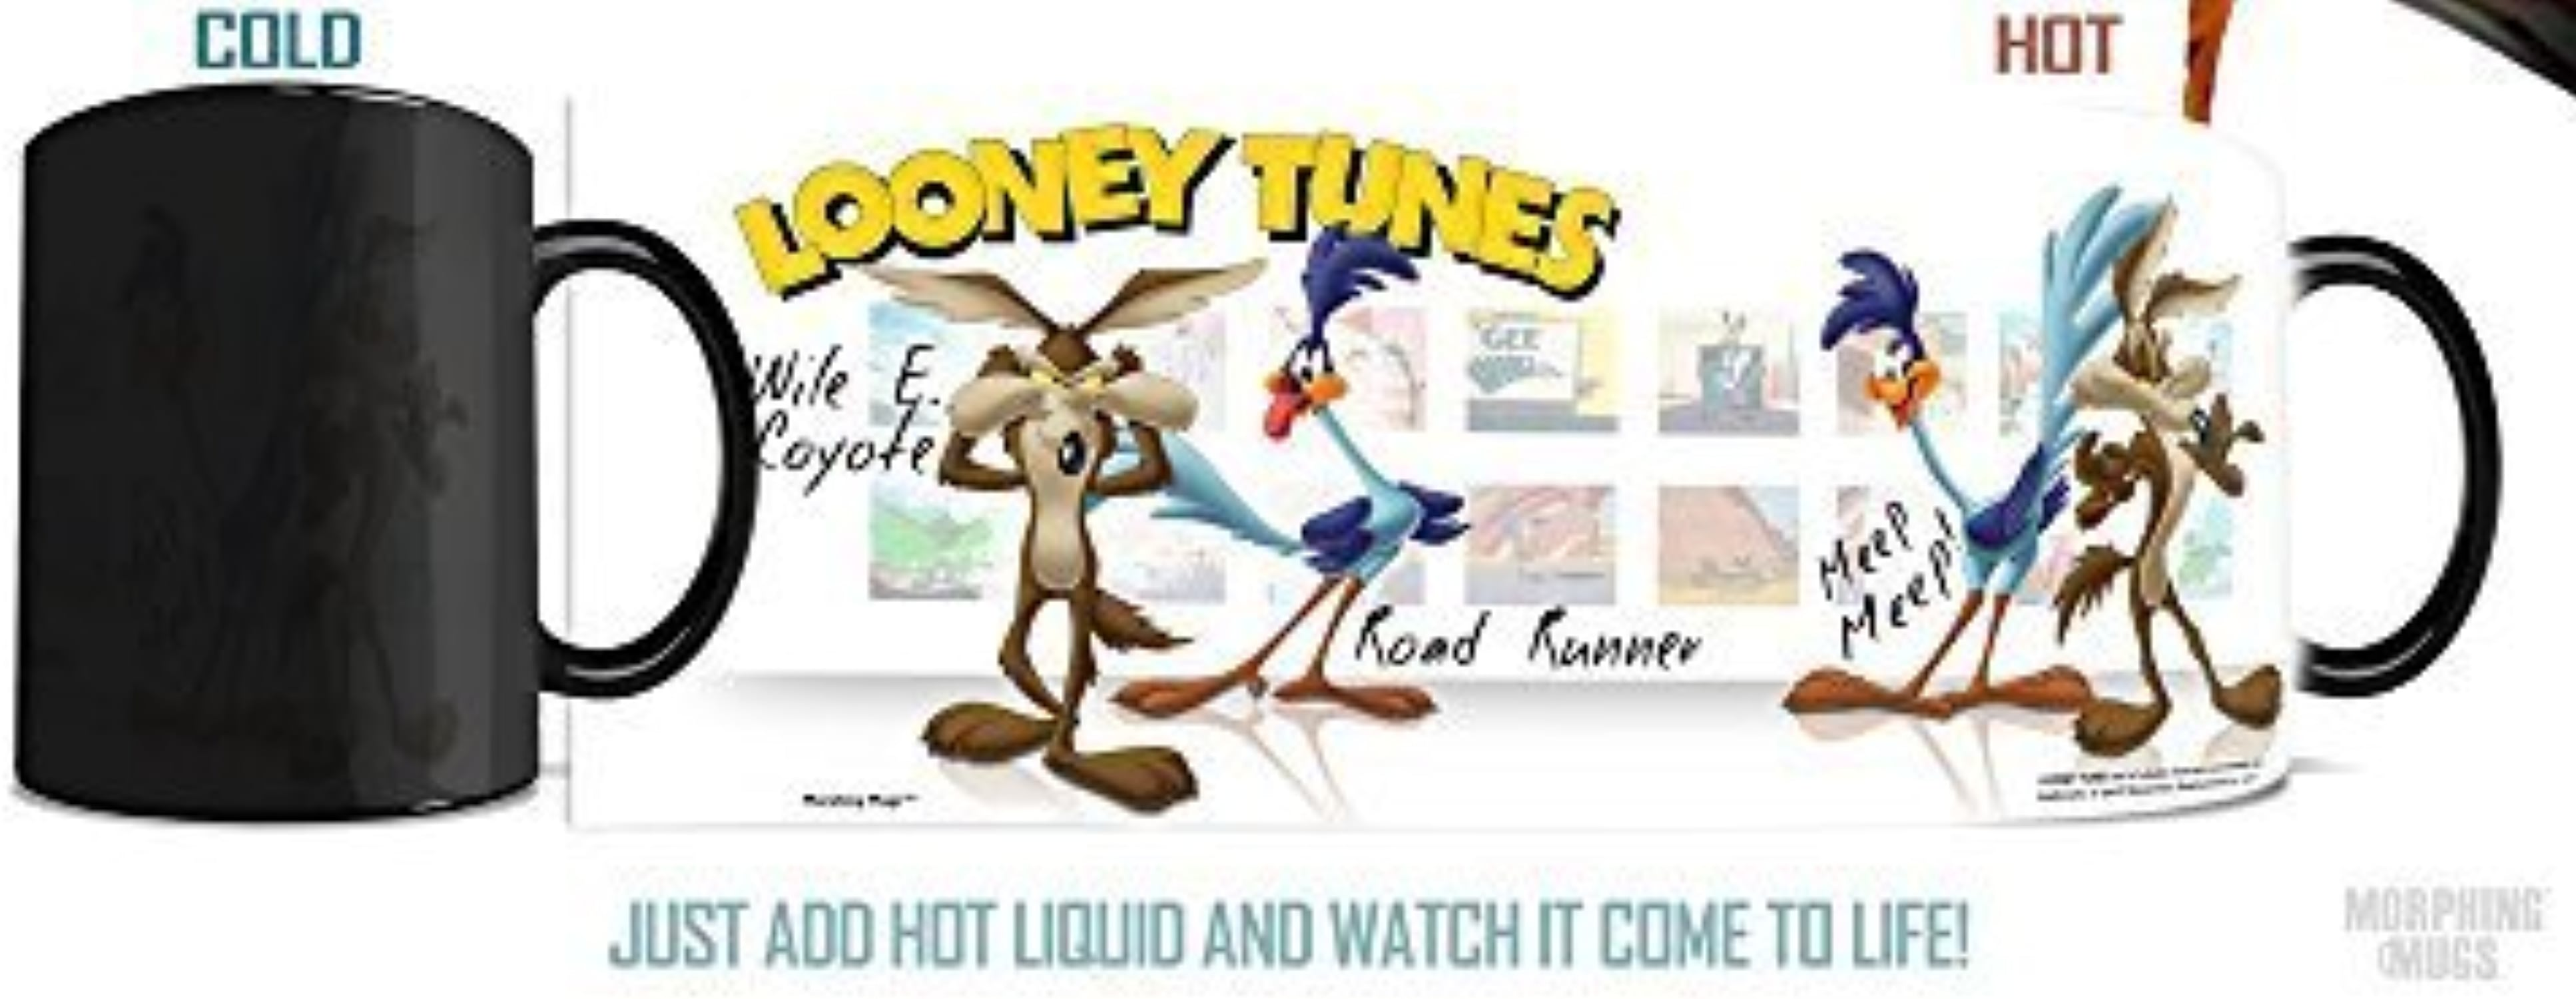 Morphing Mug Looney Tunes (Wile E Coyote and Road courirner) Ceramic Mug, noir by Morphing Mug